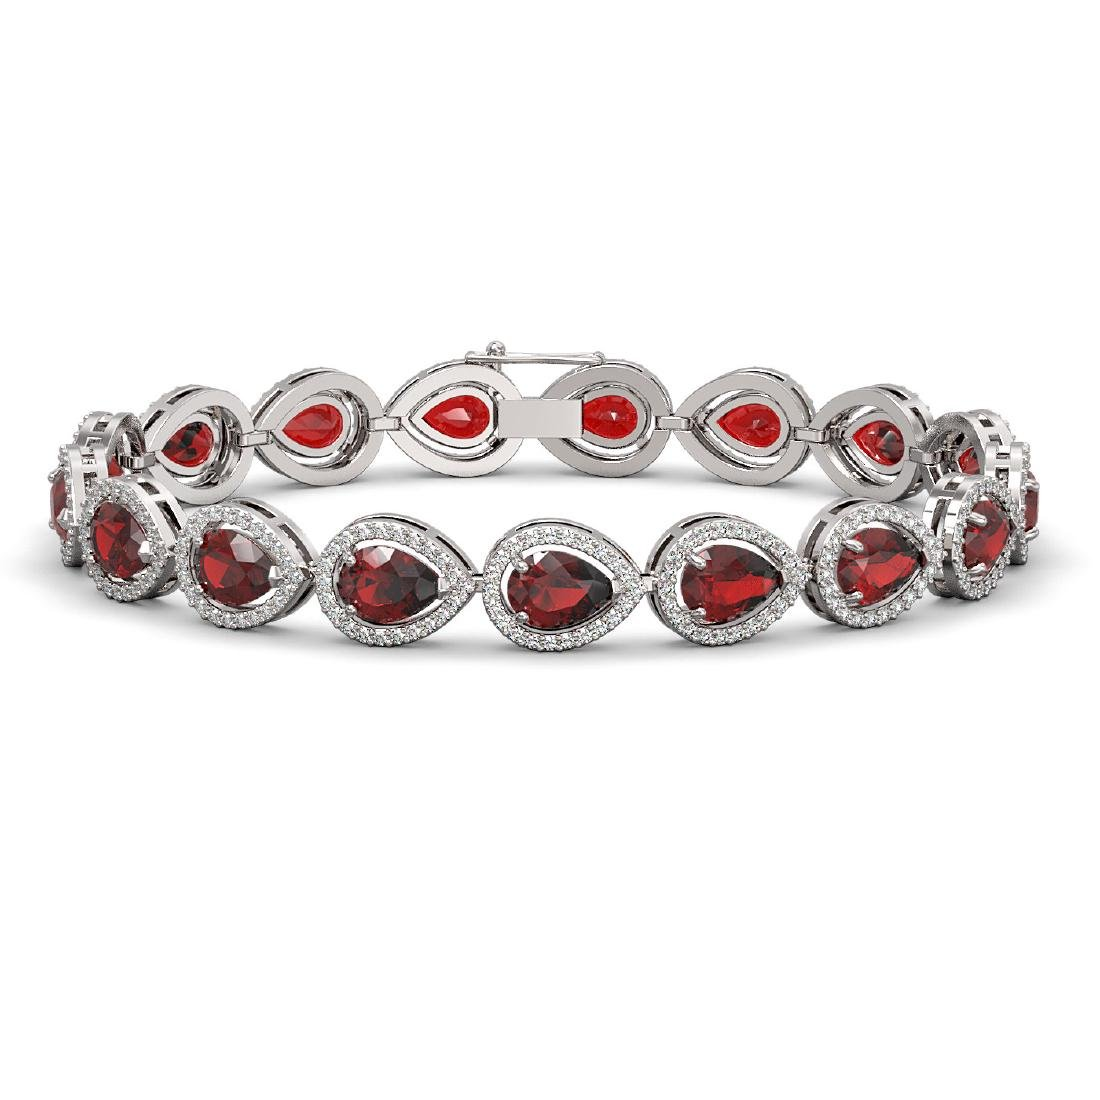 17.44 CTW Garnet & Diamond Halo Bracelet 10K White Gold